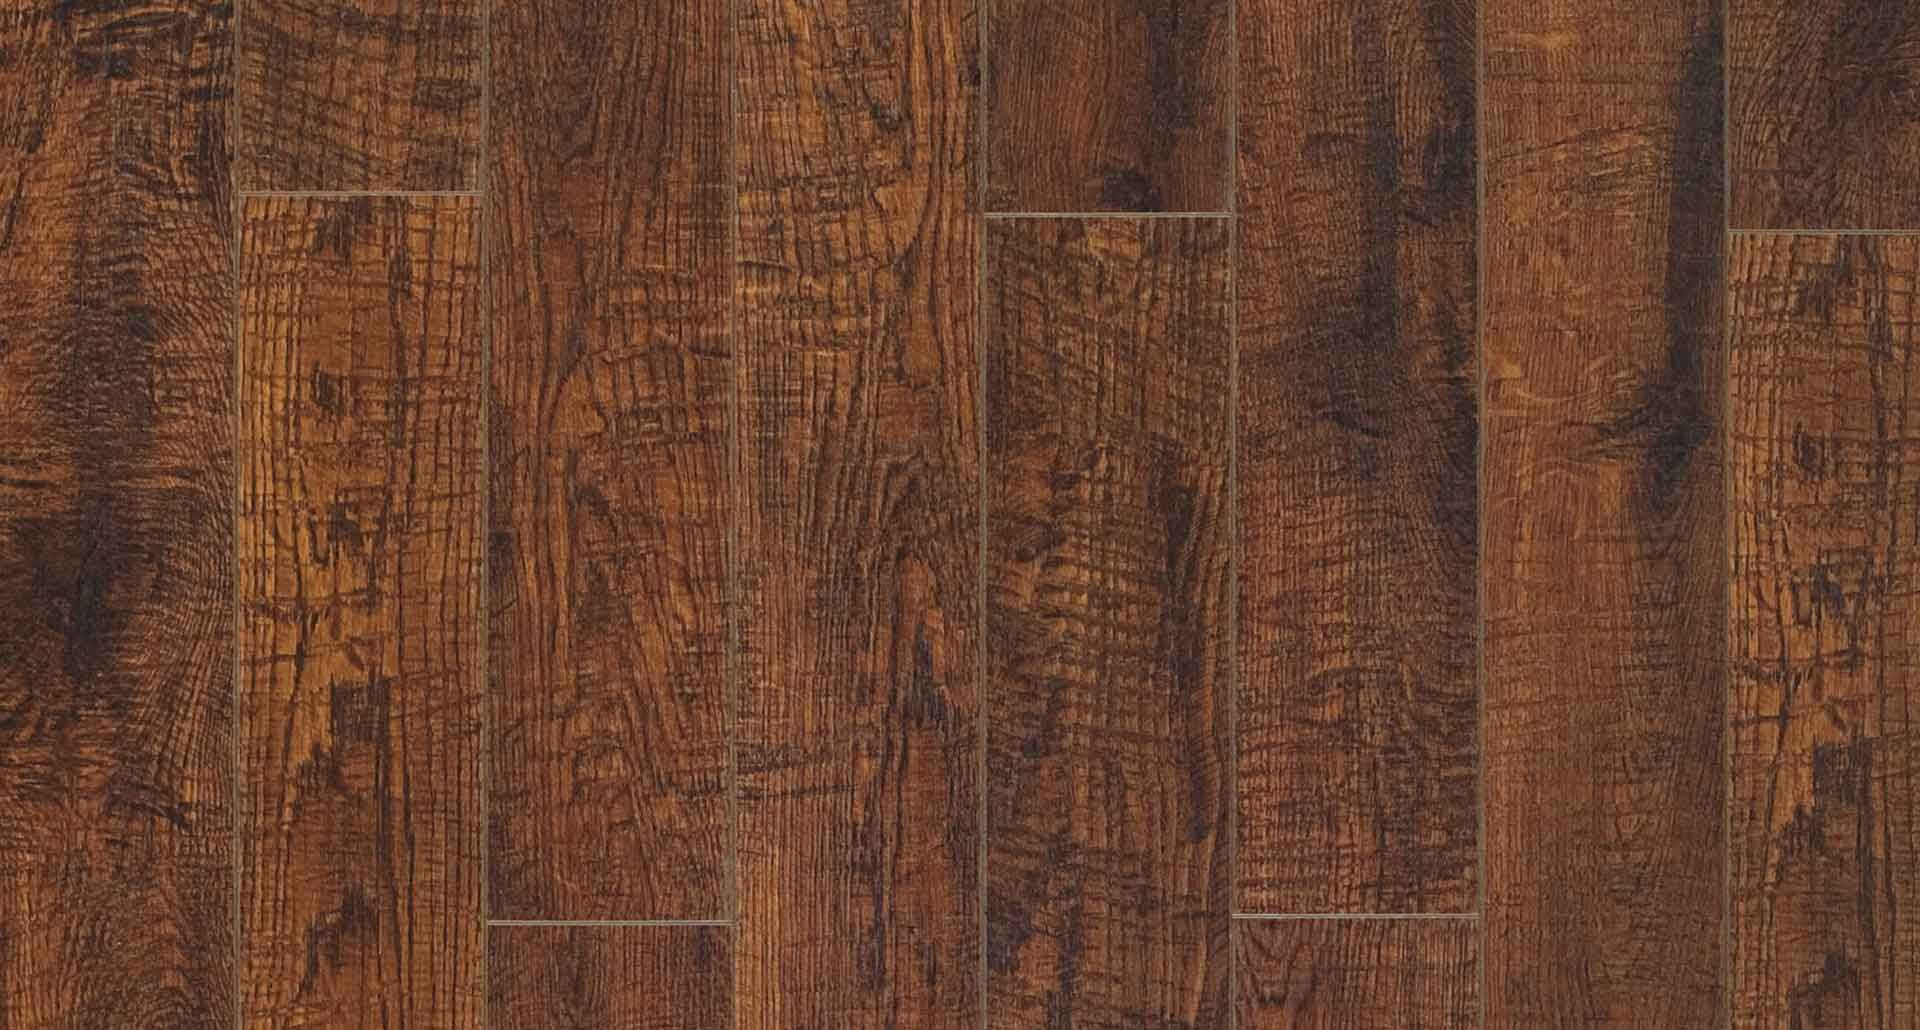 Hand Sawn Oak Handscraped Laminate Floor Dark Oak Wood Finish 10mm 1 Strip Plank Laminate Flooring Easy To Flooring Laminate Flooring Oak Laminate Flooring